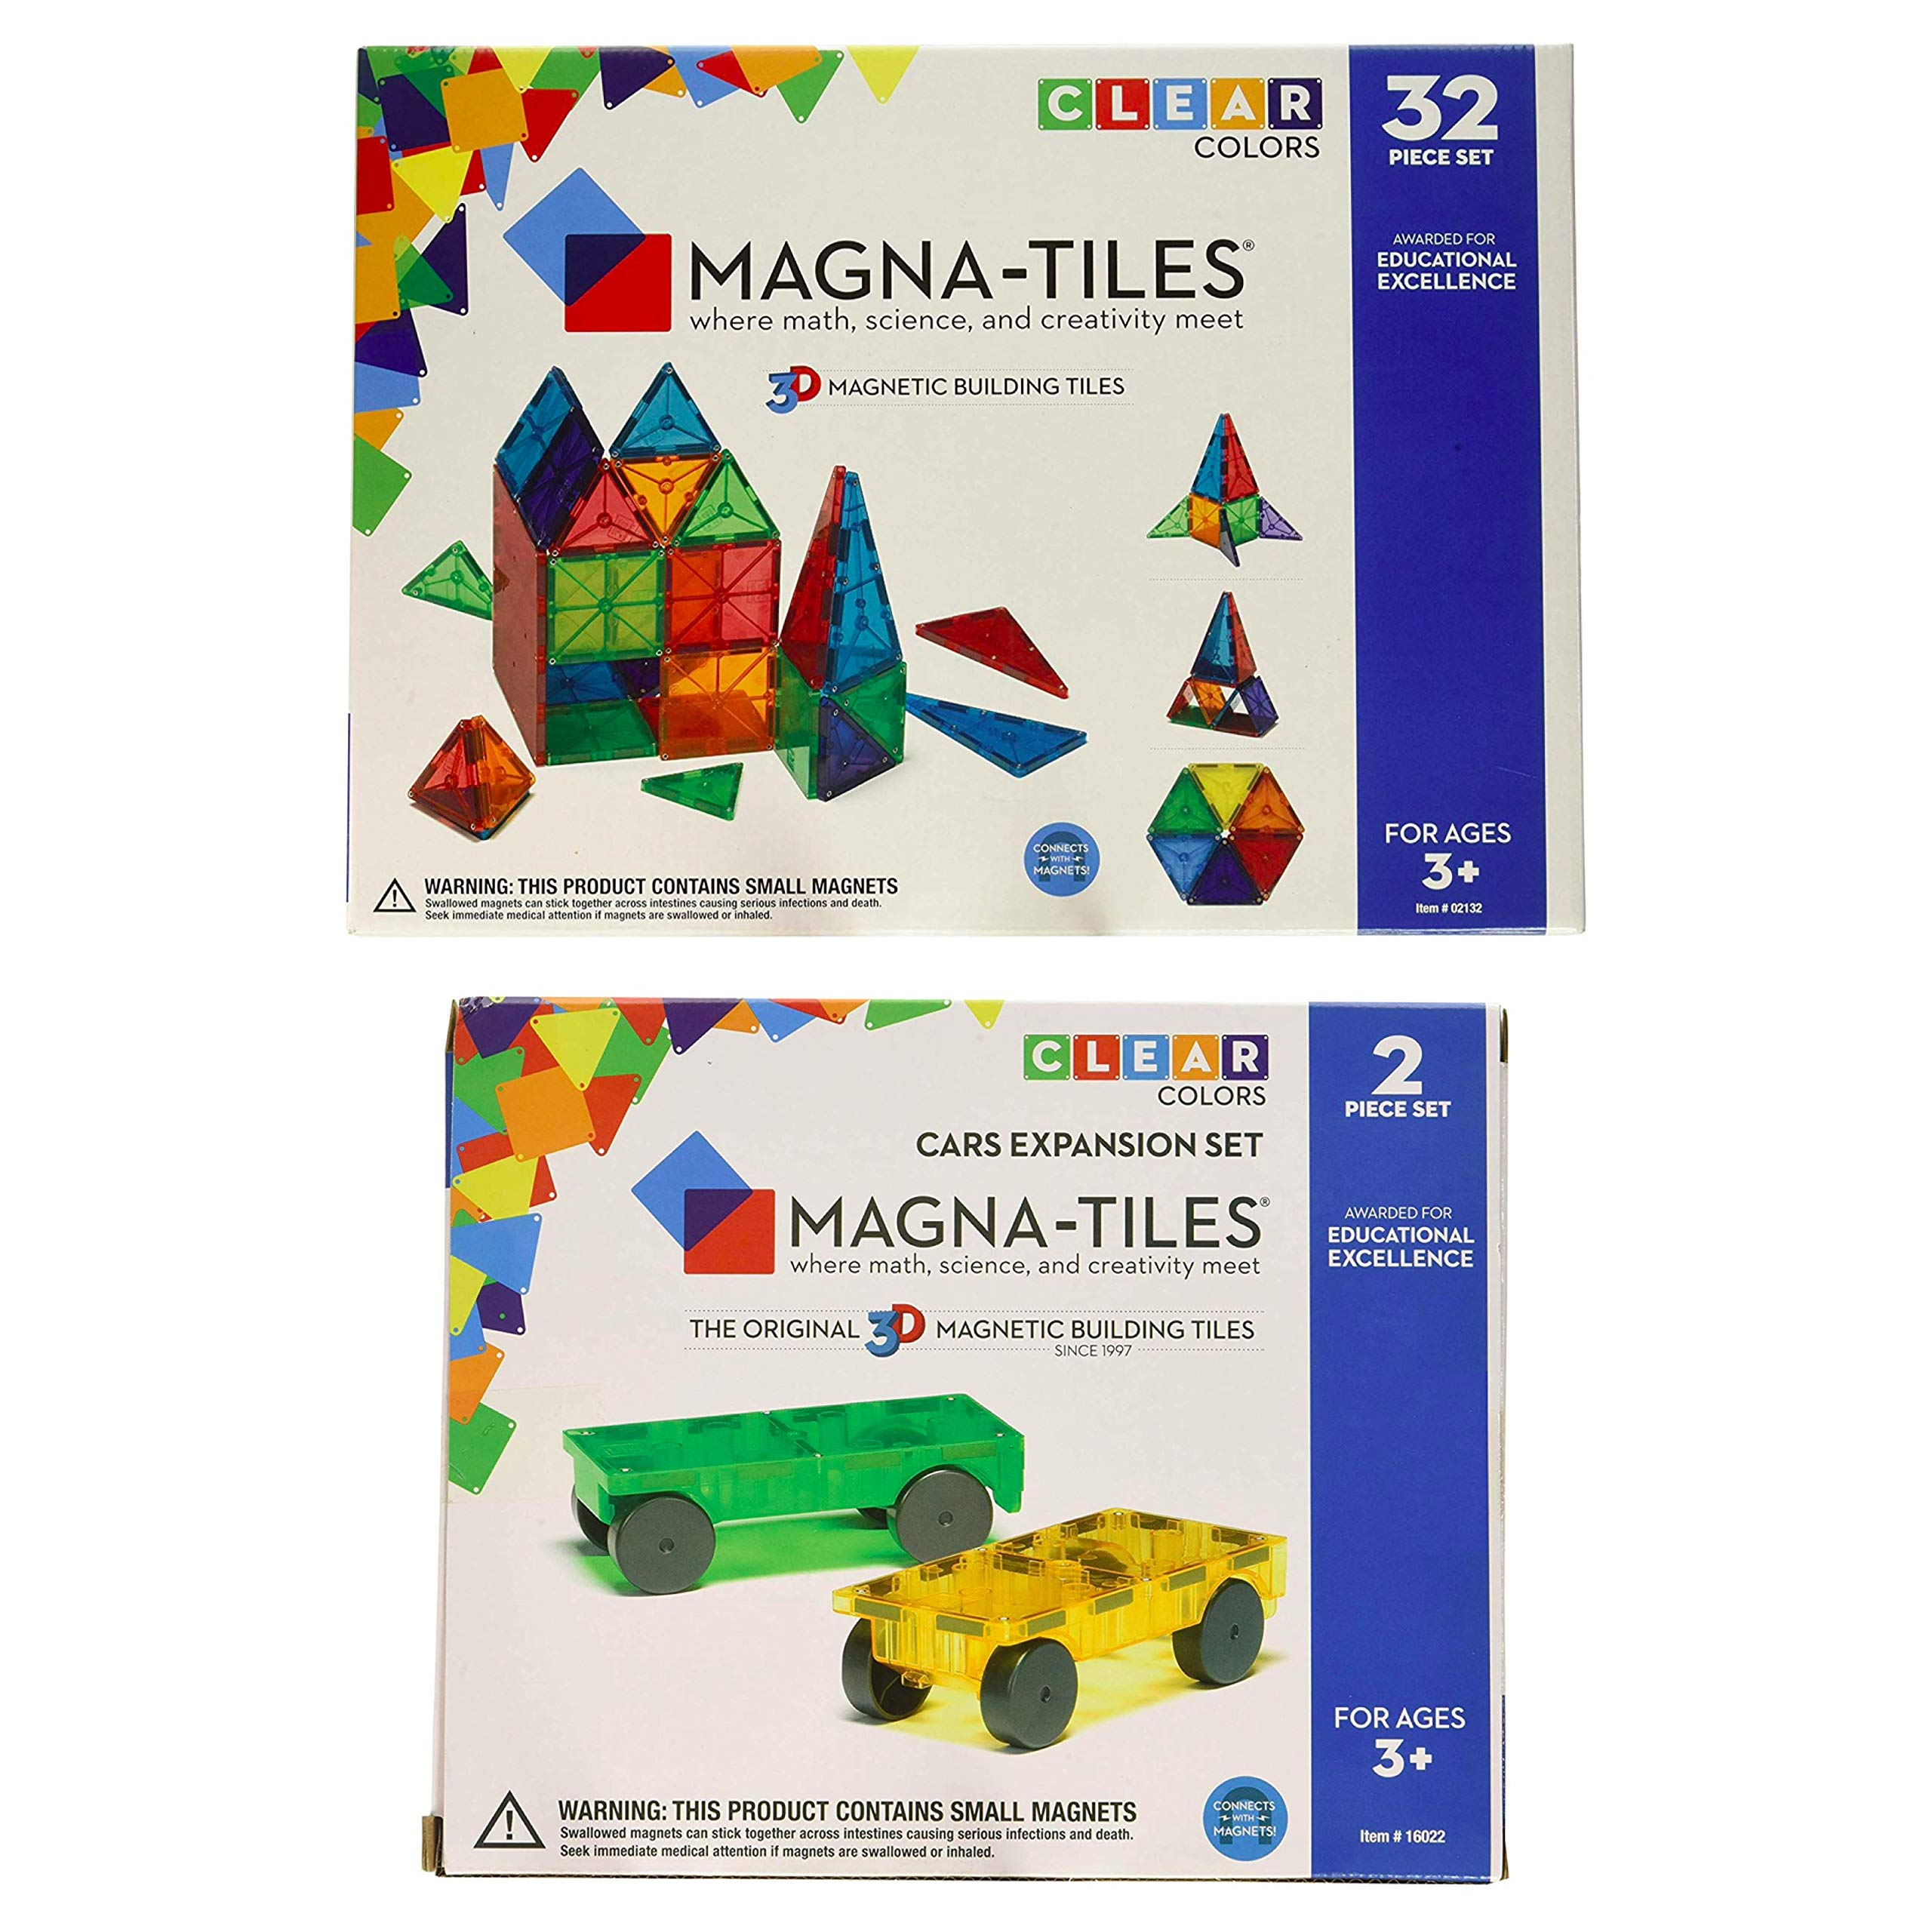 Magna-Tiles 32-Piece Clear Colors Set - The Original, Award-Winning Magnetic Building Tiles - Creativity and Educational - STEM Approved Bundled 2-Piece Car Expansion Set